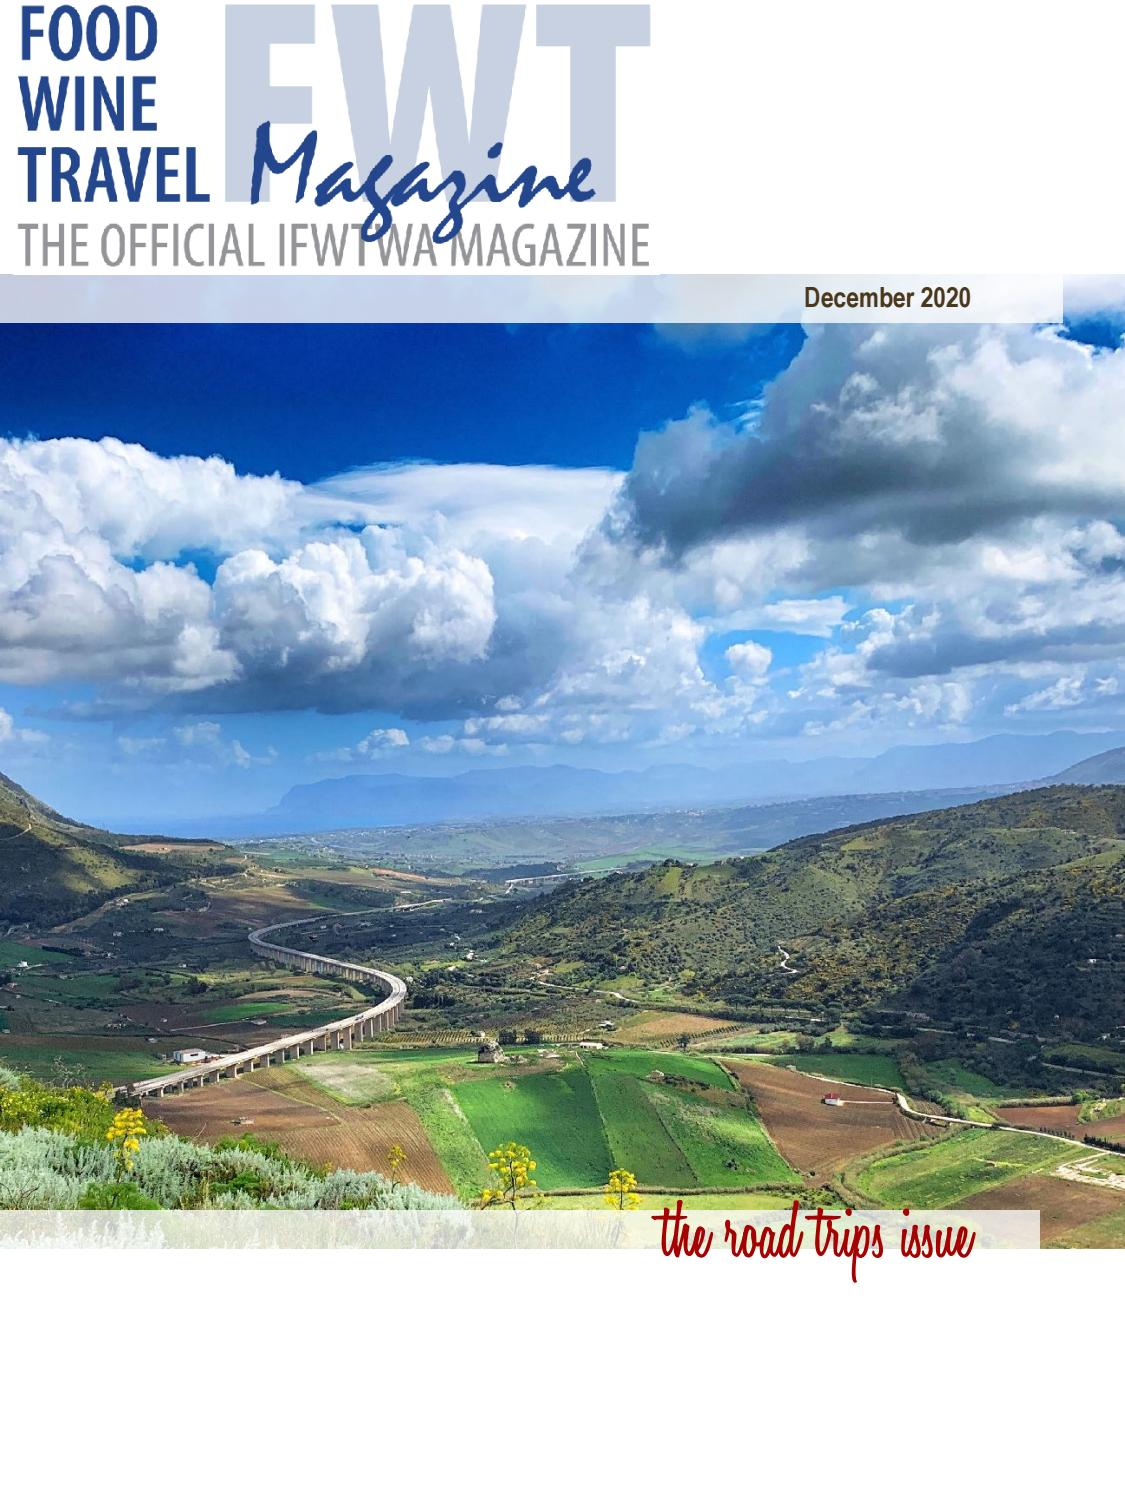 Food Wine Travel Magazine The Road Trips Issue By Foodwinetravelmagazine Issuu